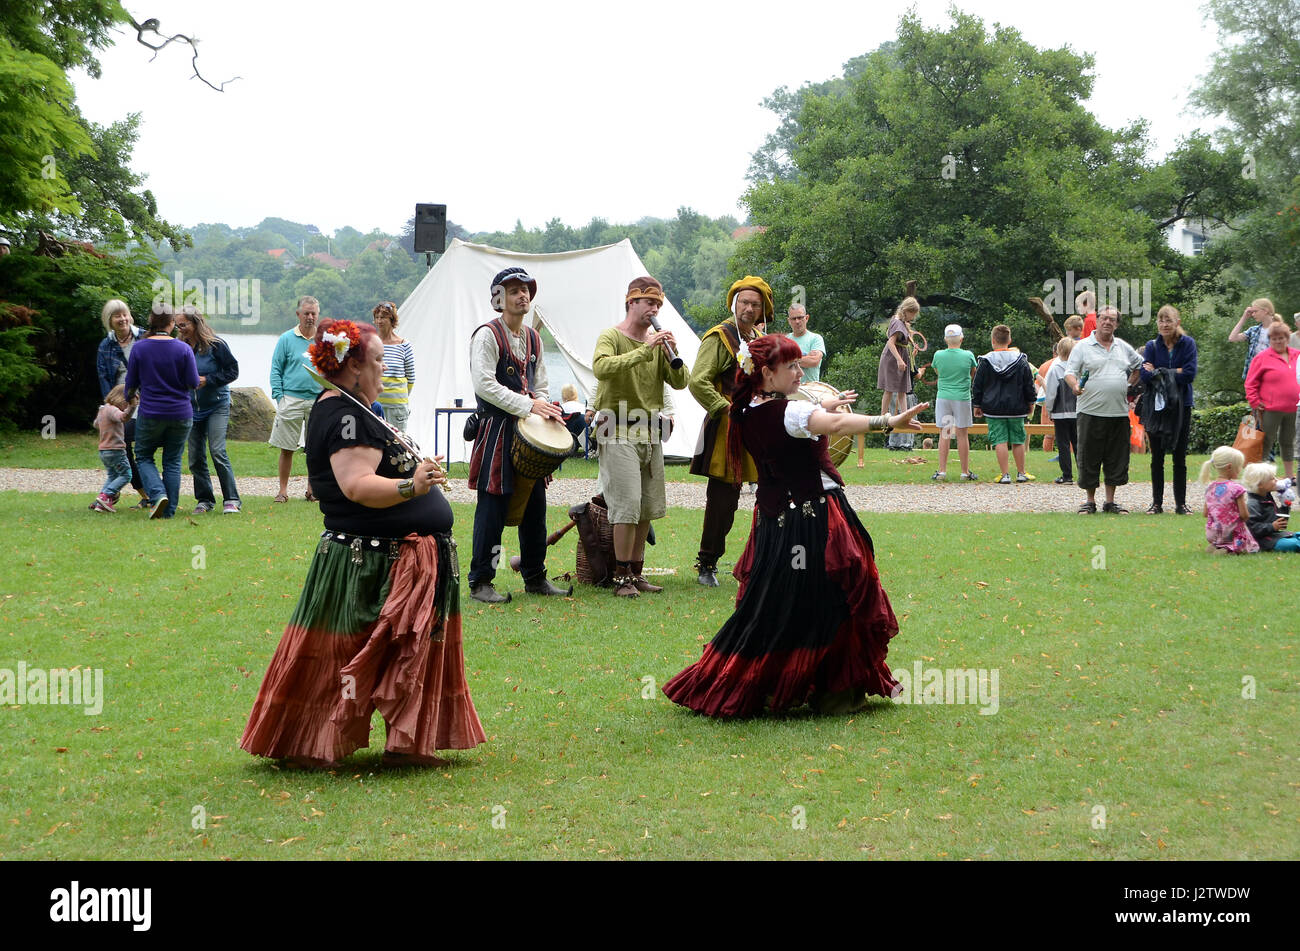 Nordborg, Denmark - August 10, 2013: Middel Age festival at the lake, dancers and musicians show ancient music and Stock Photo